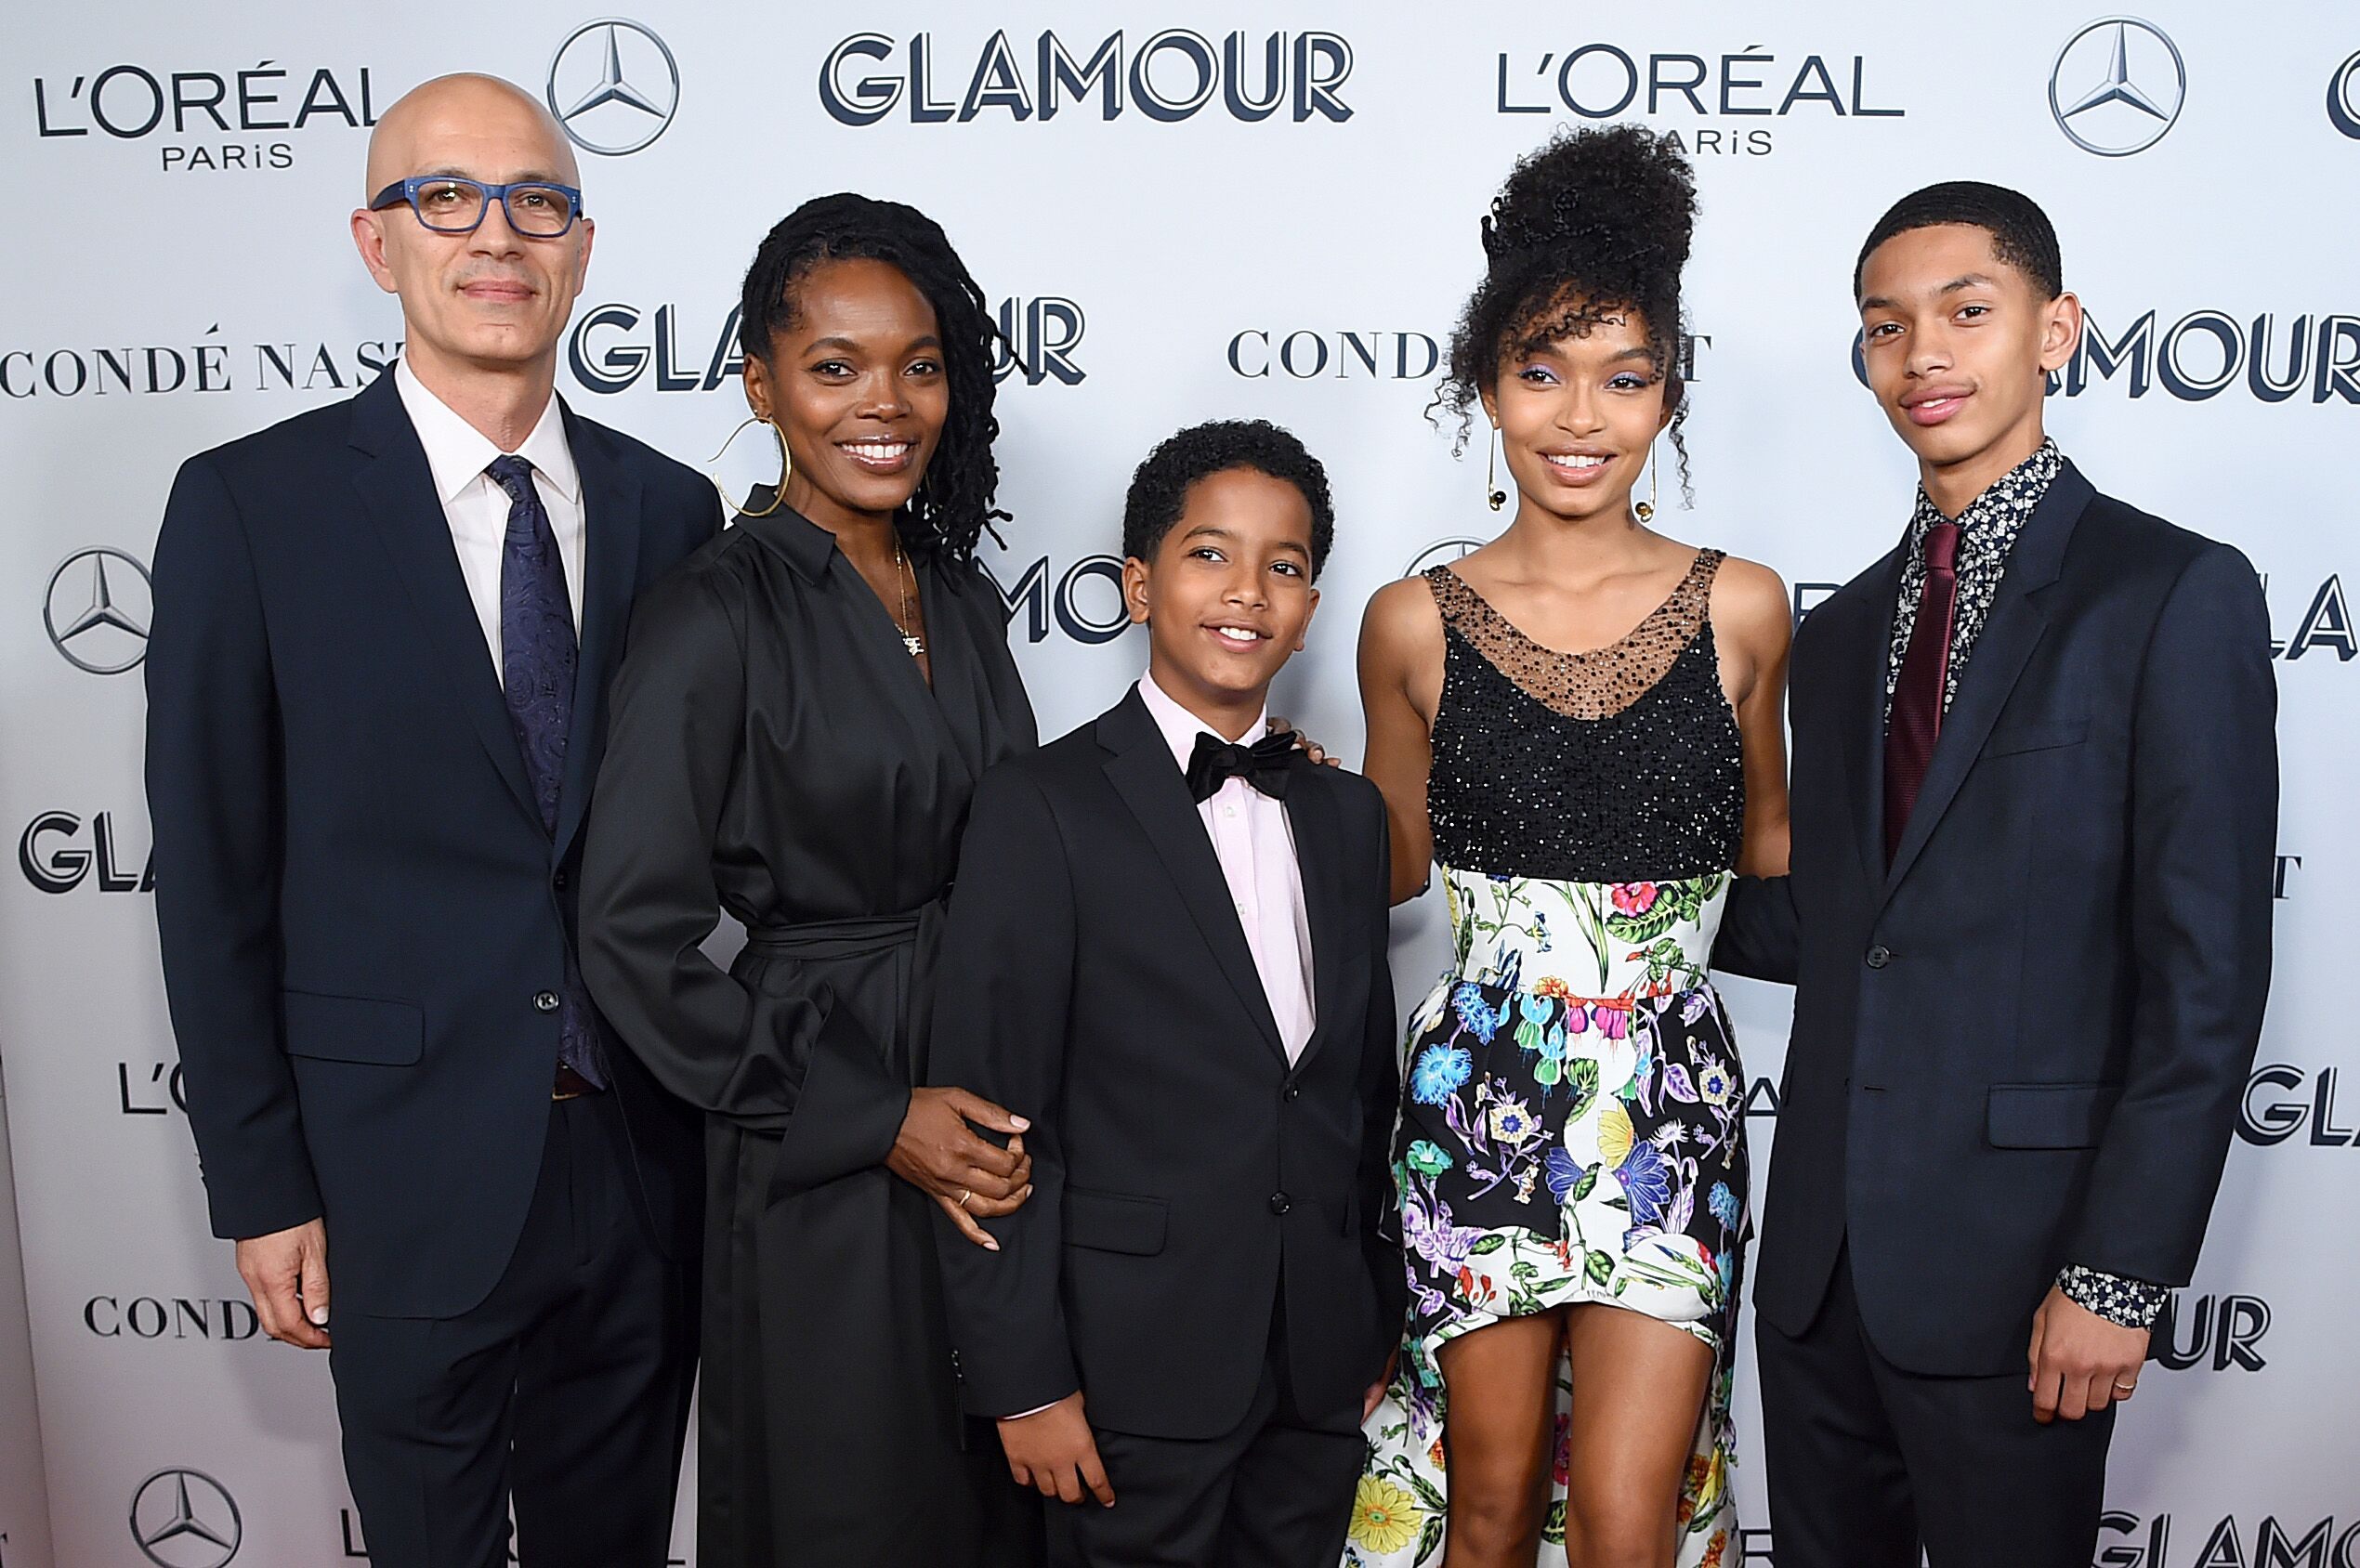 Yara Shahidi  at the 2019 Glamour Women of the Year Awards with her family / Source: Getty Images